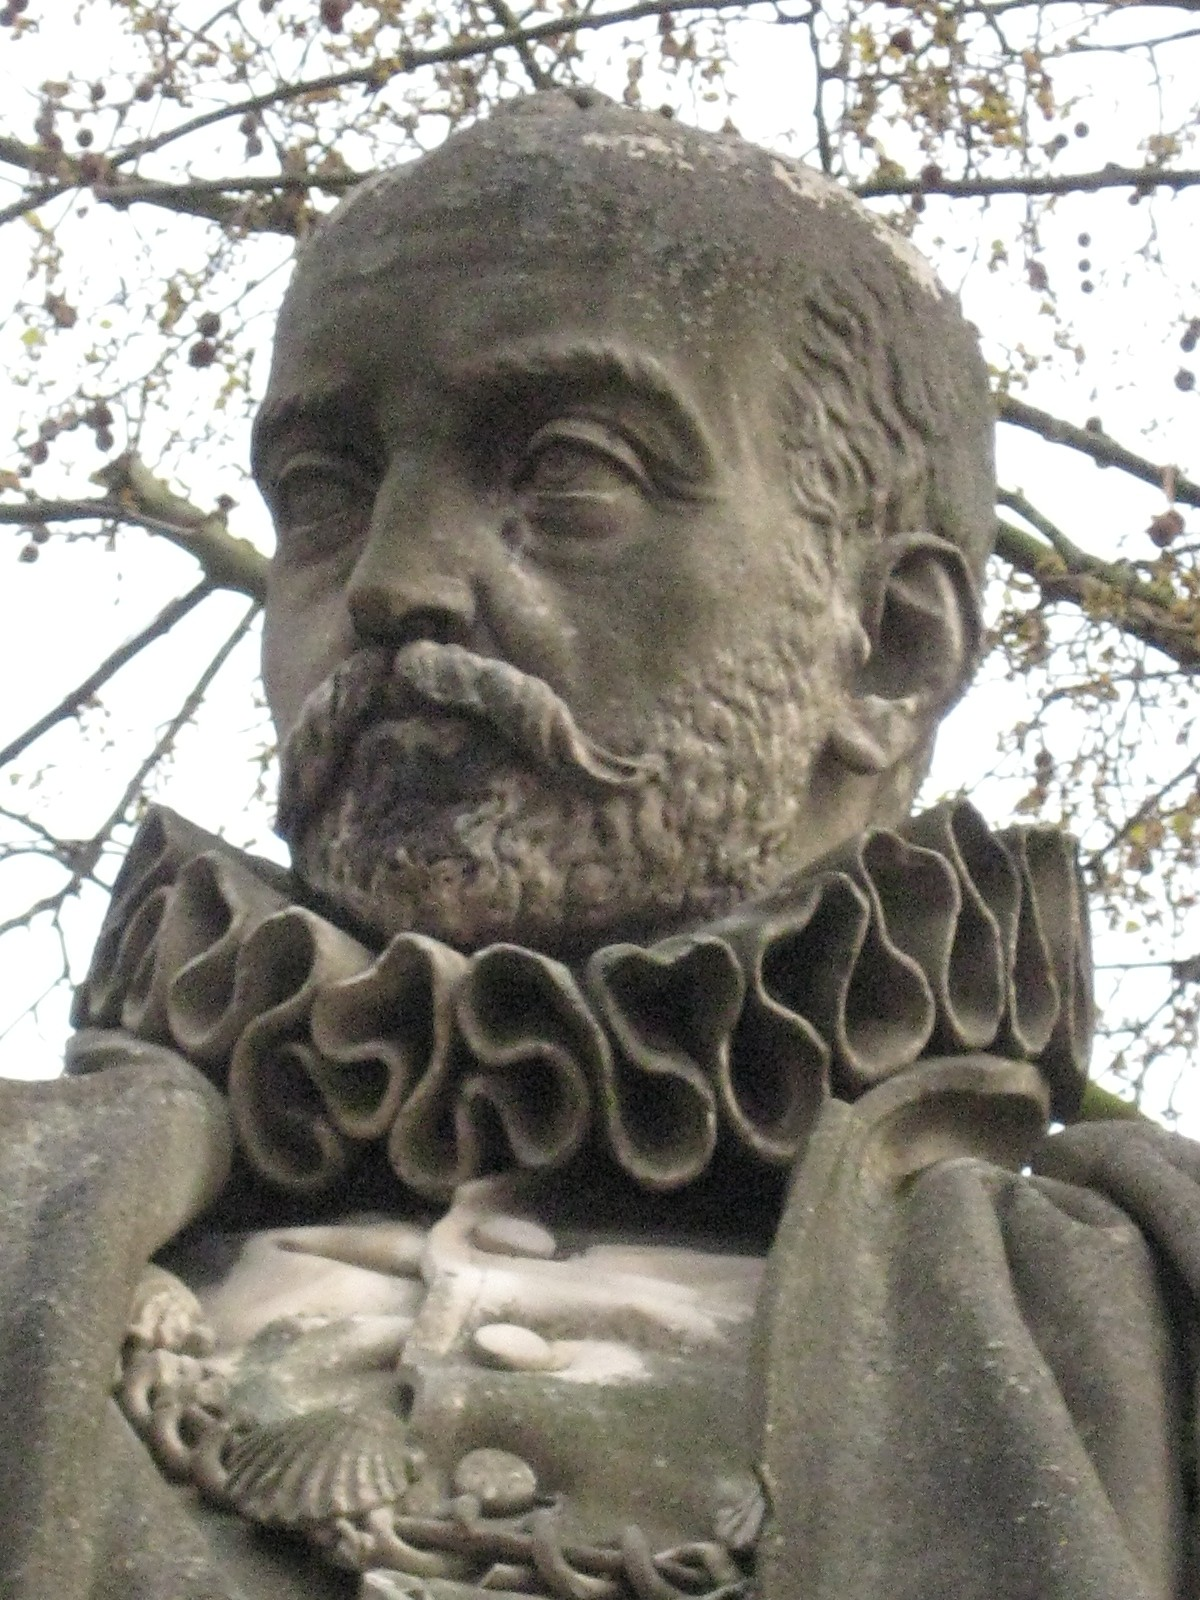 michel de montaigne essay of the inconsistency of our actions Essays, book ii michel de montaigne contents 1 the inconsistency of our actions 1 2 drunkenness 4 3 suicide 9 5 conscience 16 6 practice 18 7 honorific awards 24.